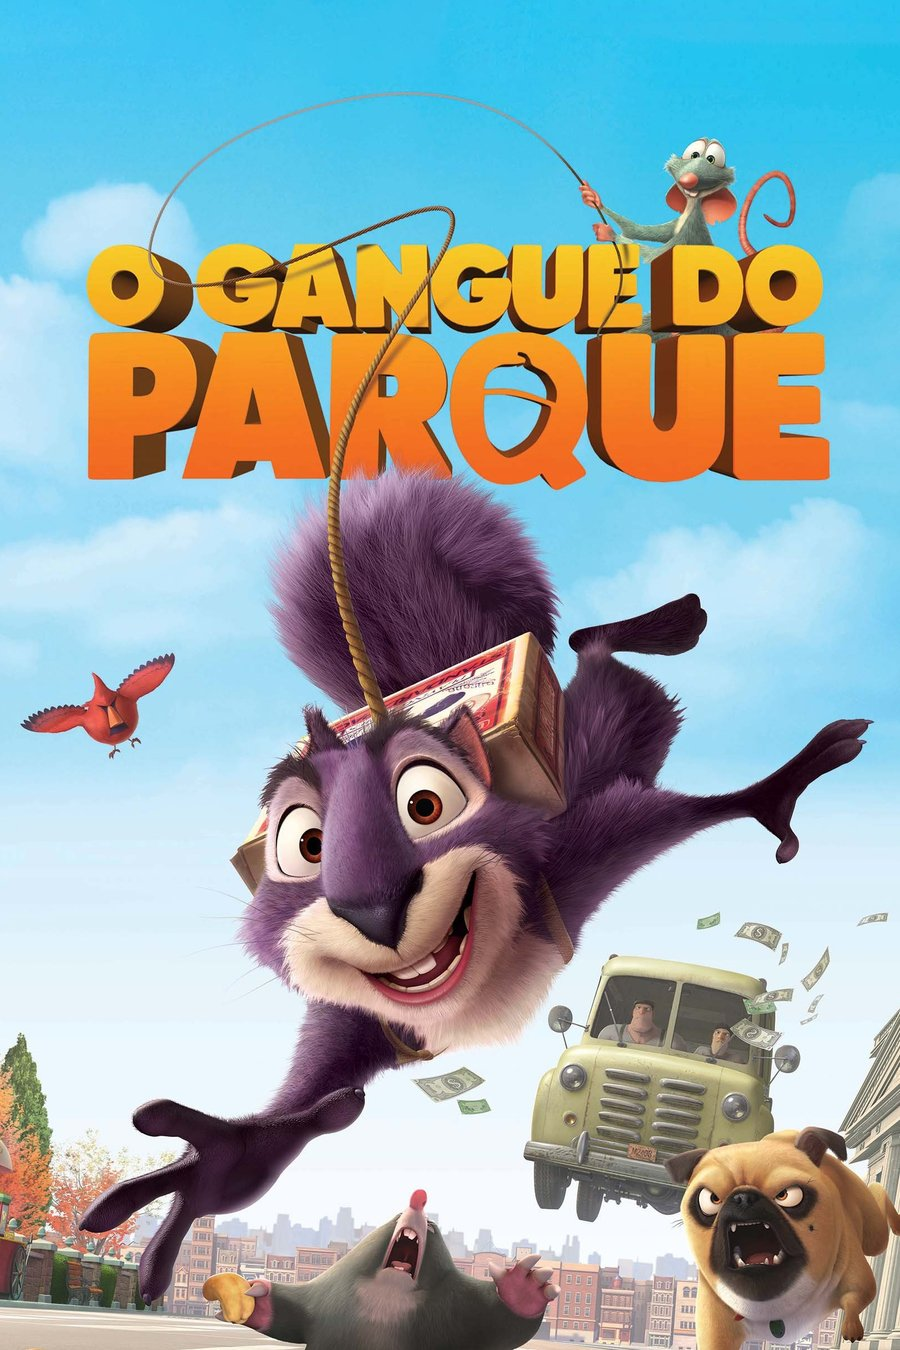 O Gangue do Parque